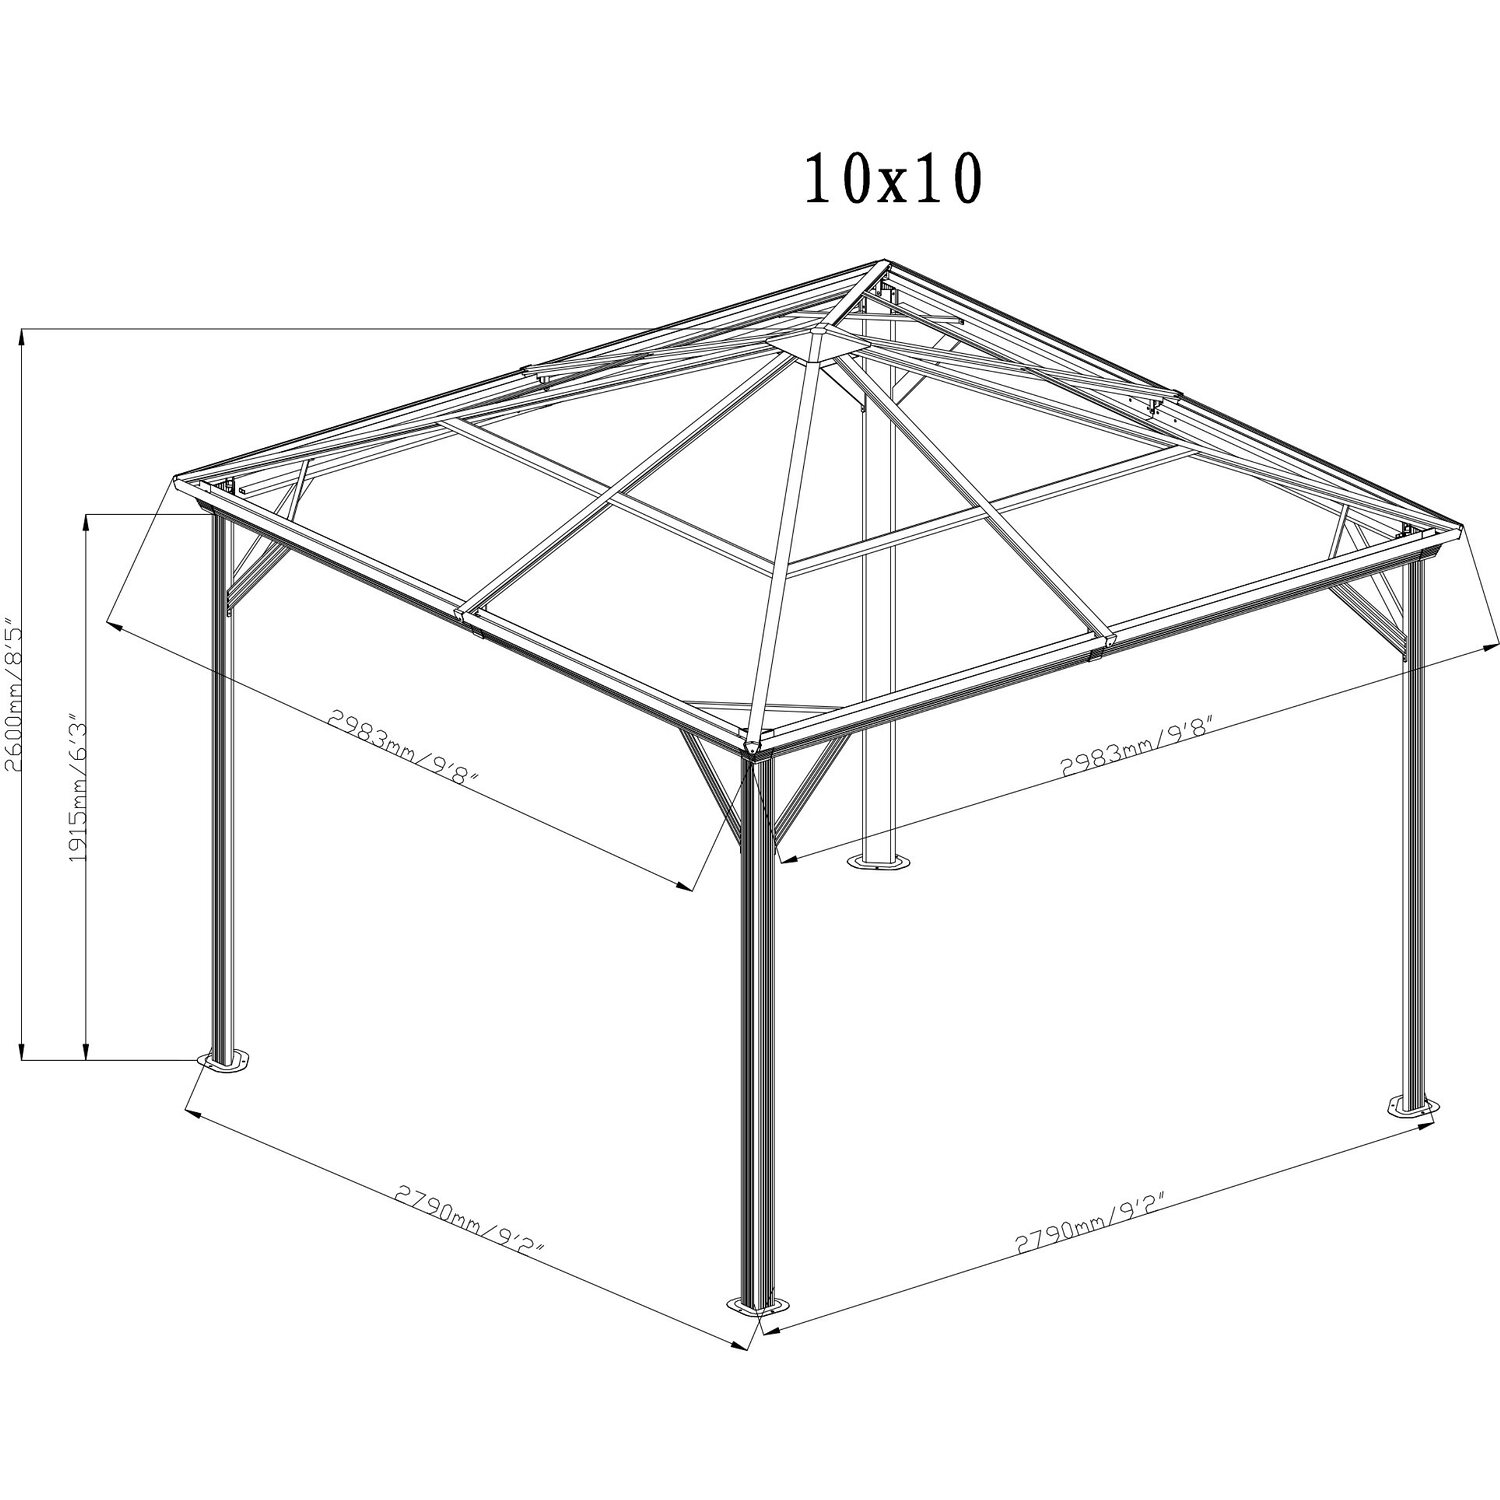 sojag aluminium pavillon verona 10 x 10 anthrazit 298 cm x 298 cm x 261 cm kaufen bei obi. Black Bedroom Furniture Sets. Home Design Ideas